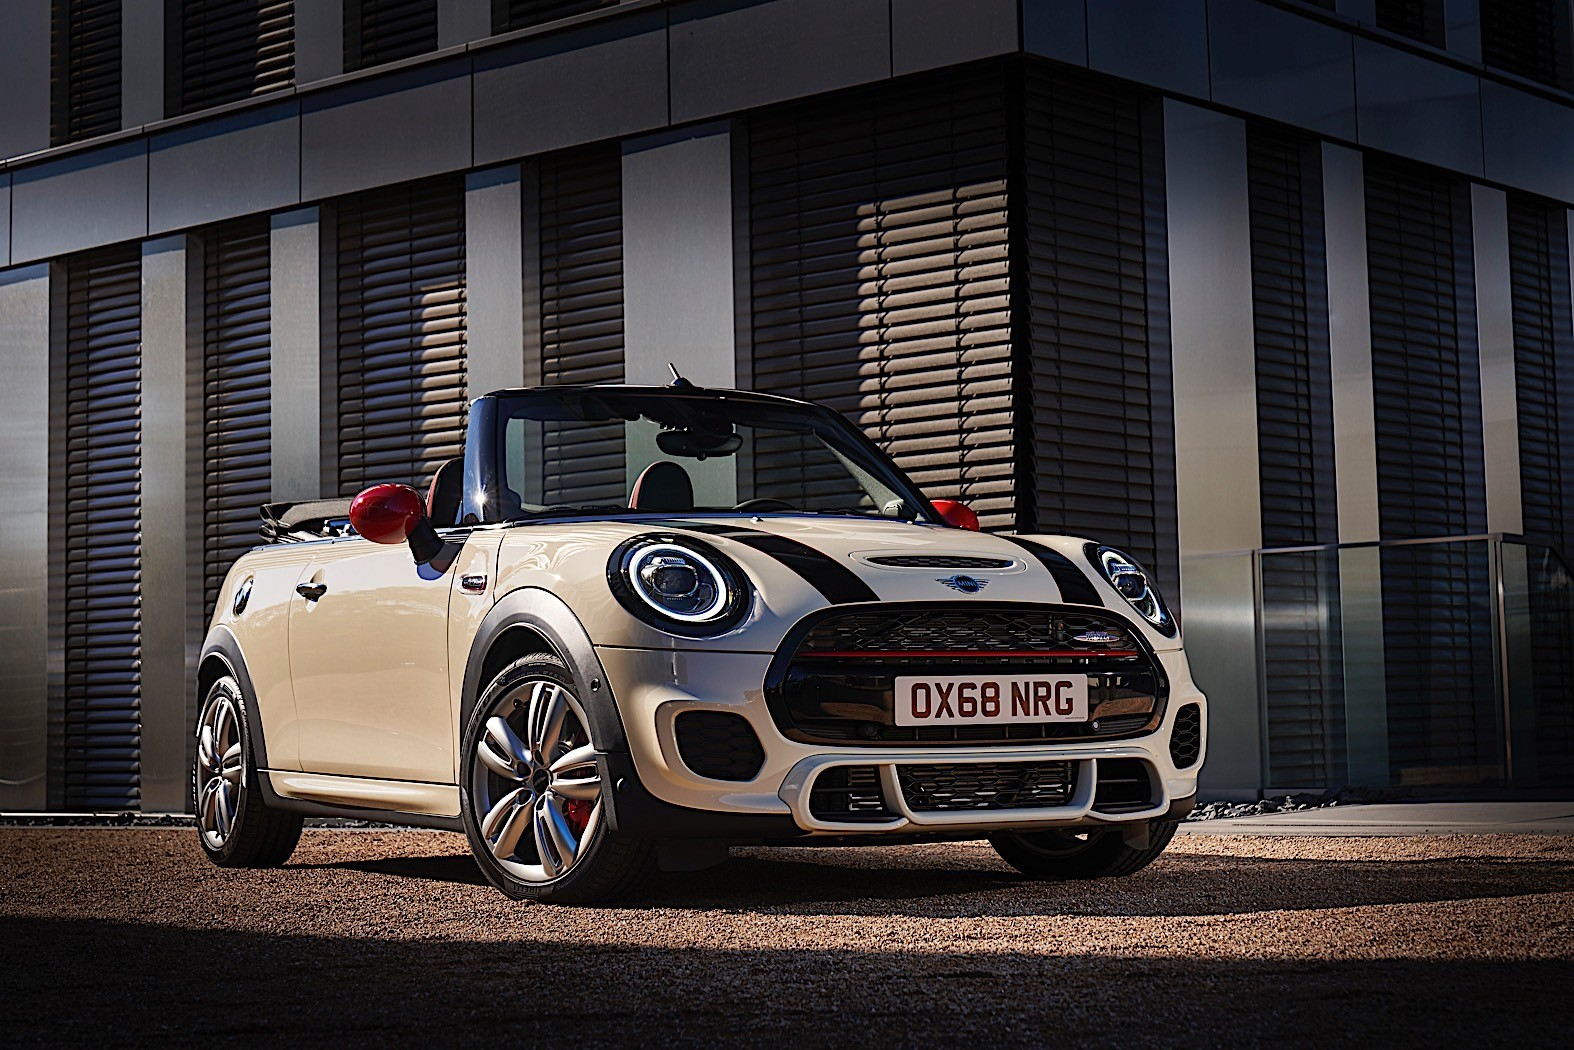 Mini John Cooper Works Comes Back As Euro D Temp Compliant Car From March